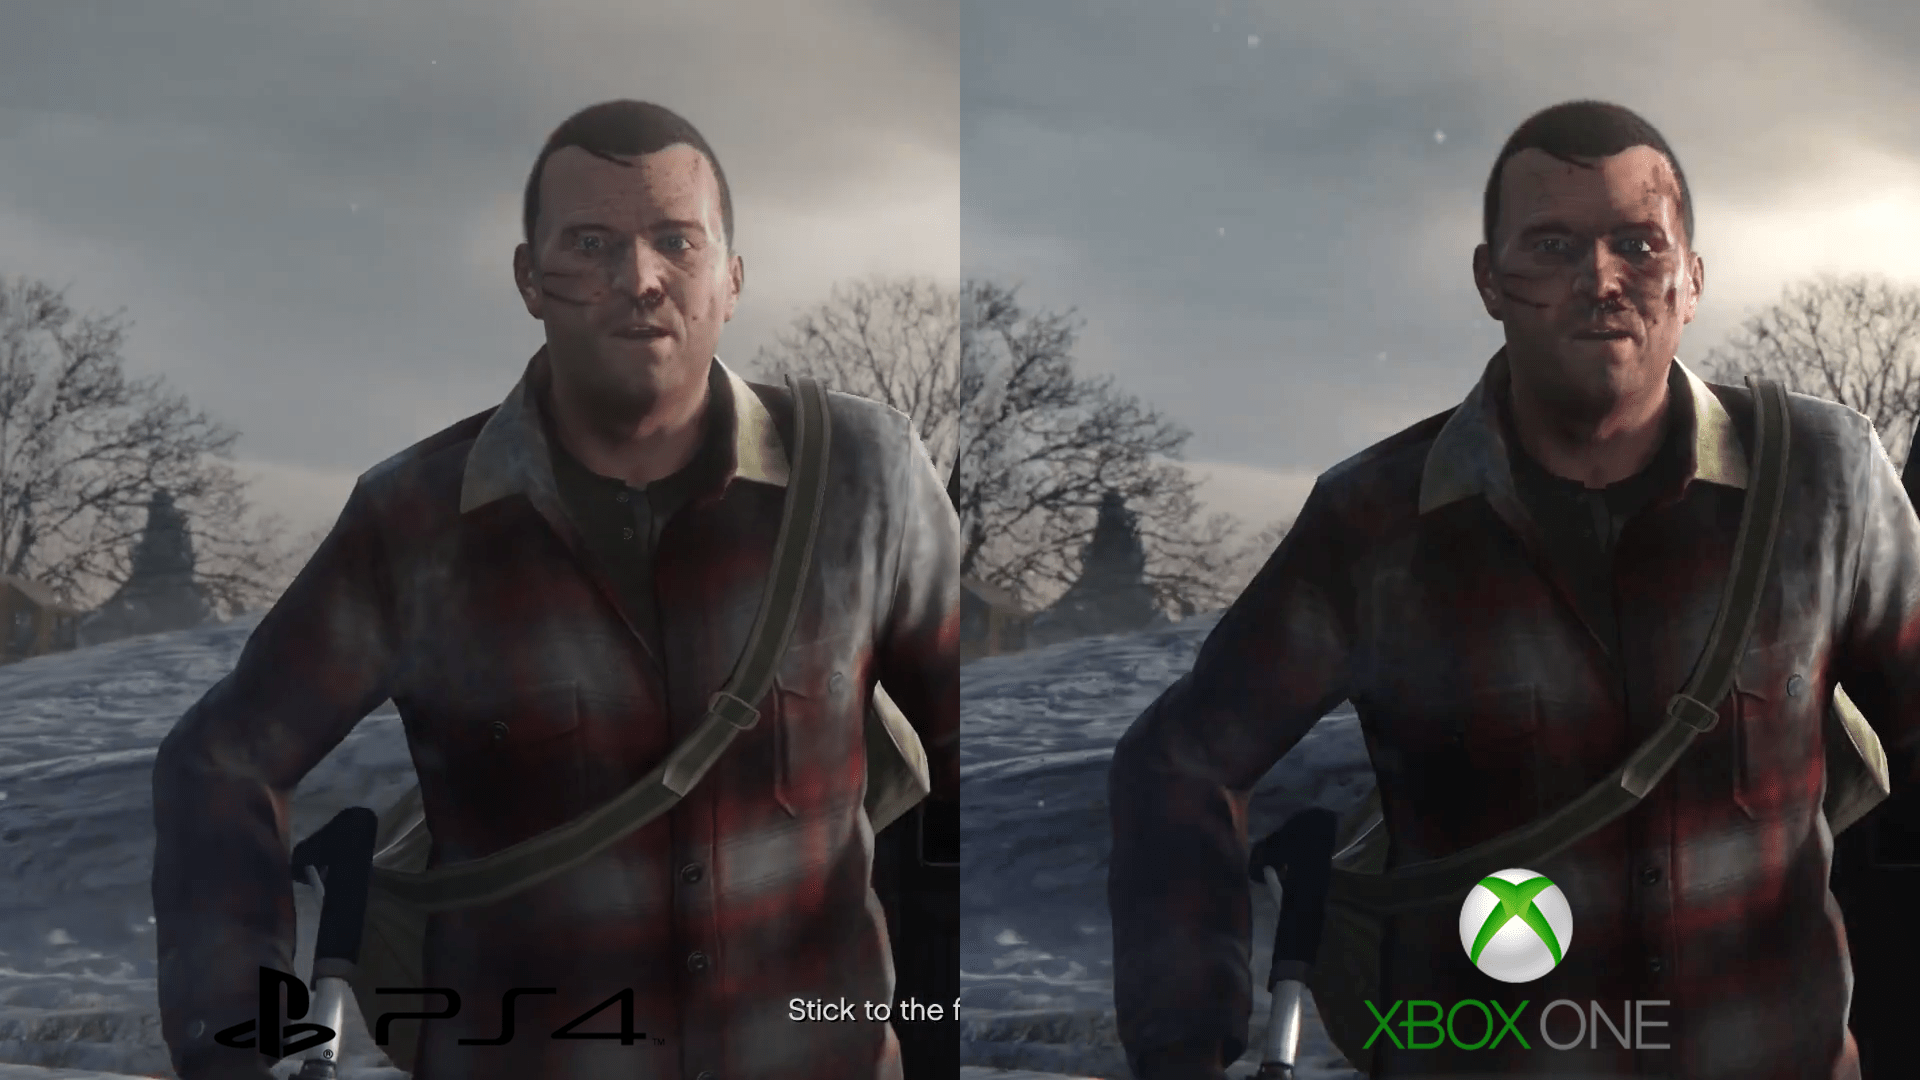 GTA V PS4 Vs Xbox One 1080p Video And Screenshot Comparison Xbox One Version Sightly More Detailed